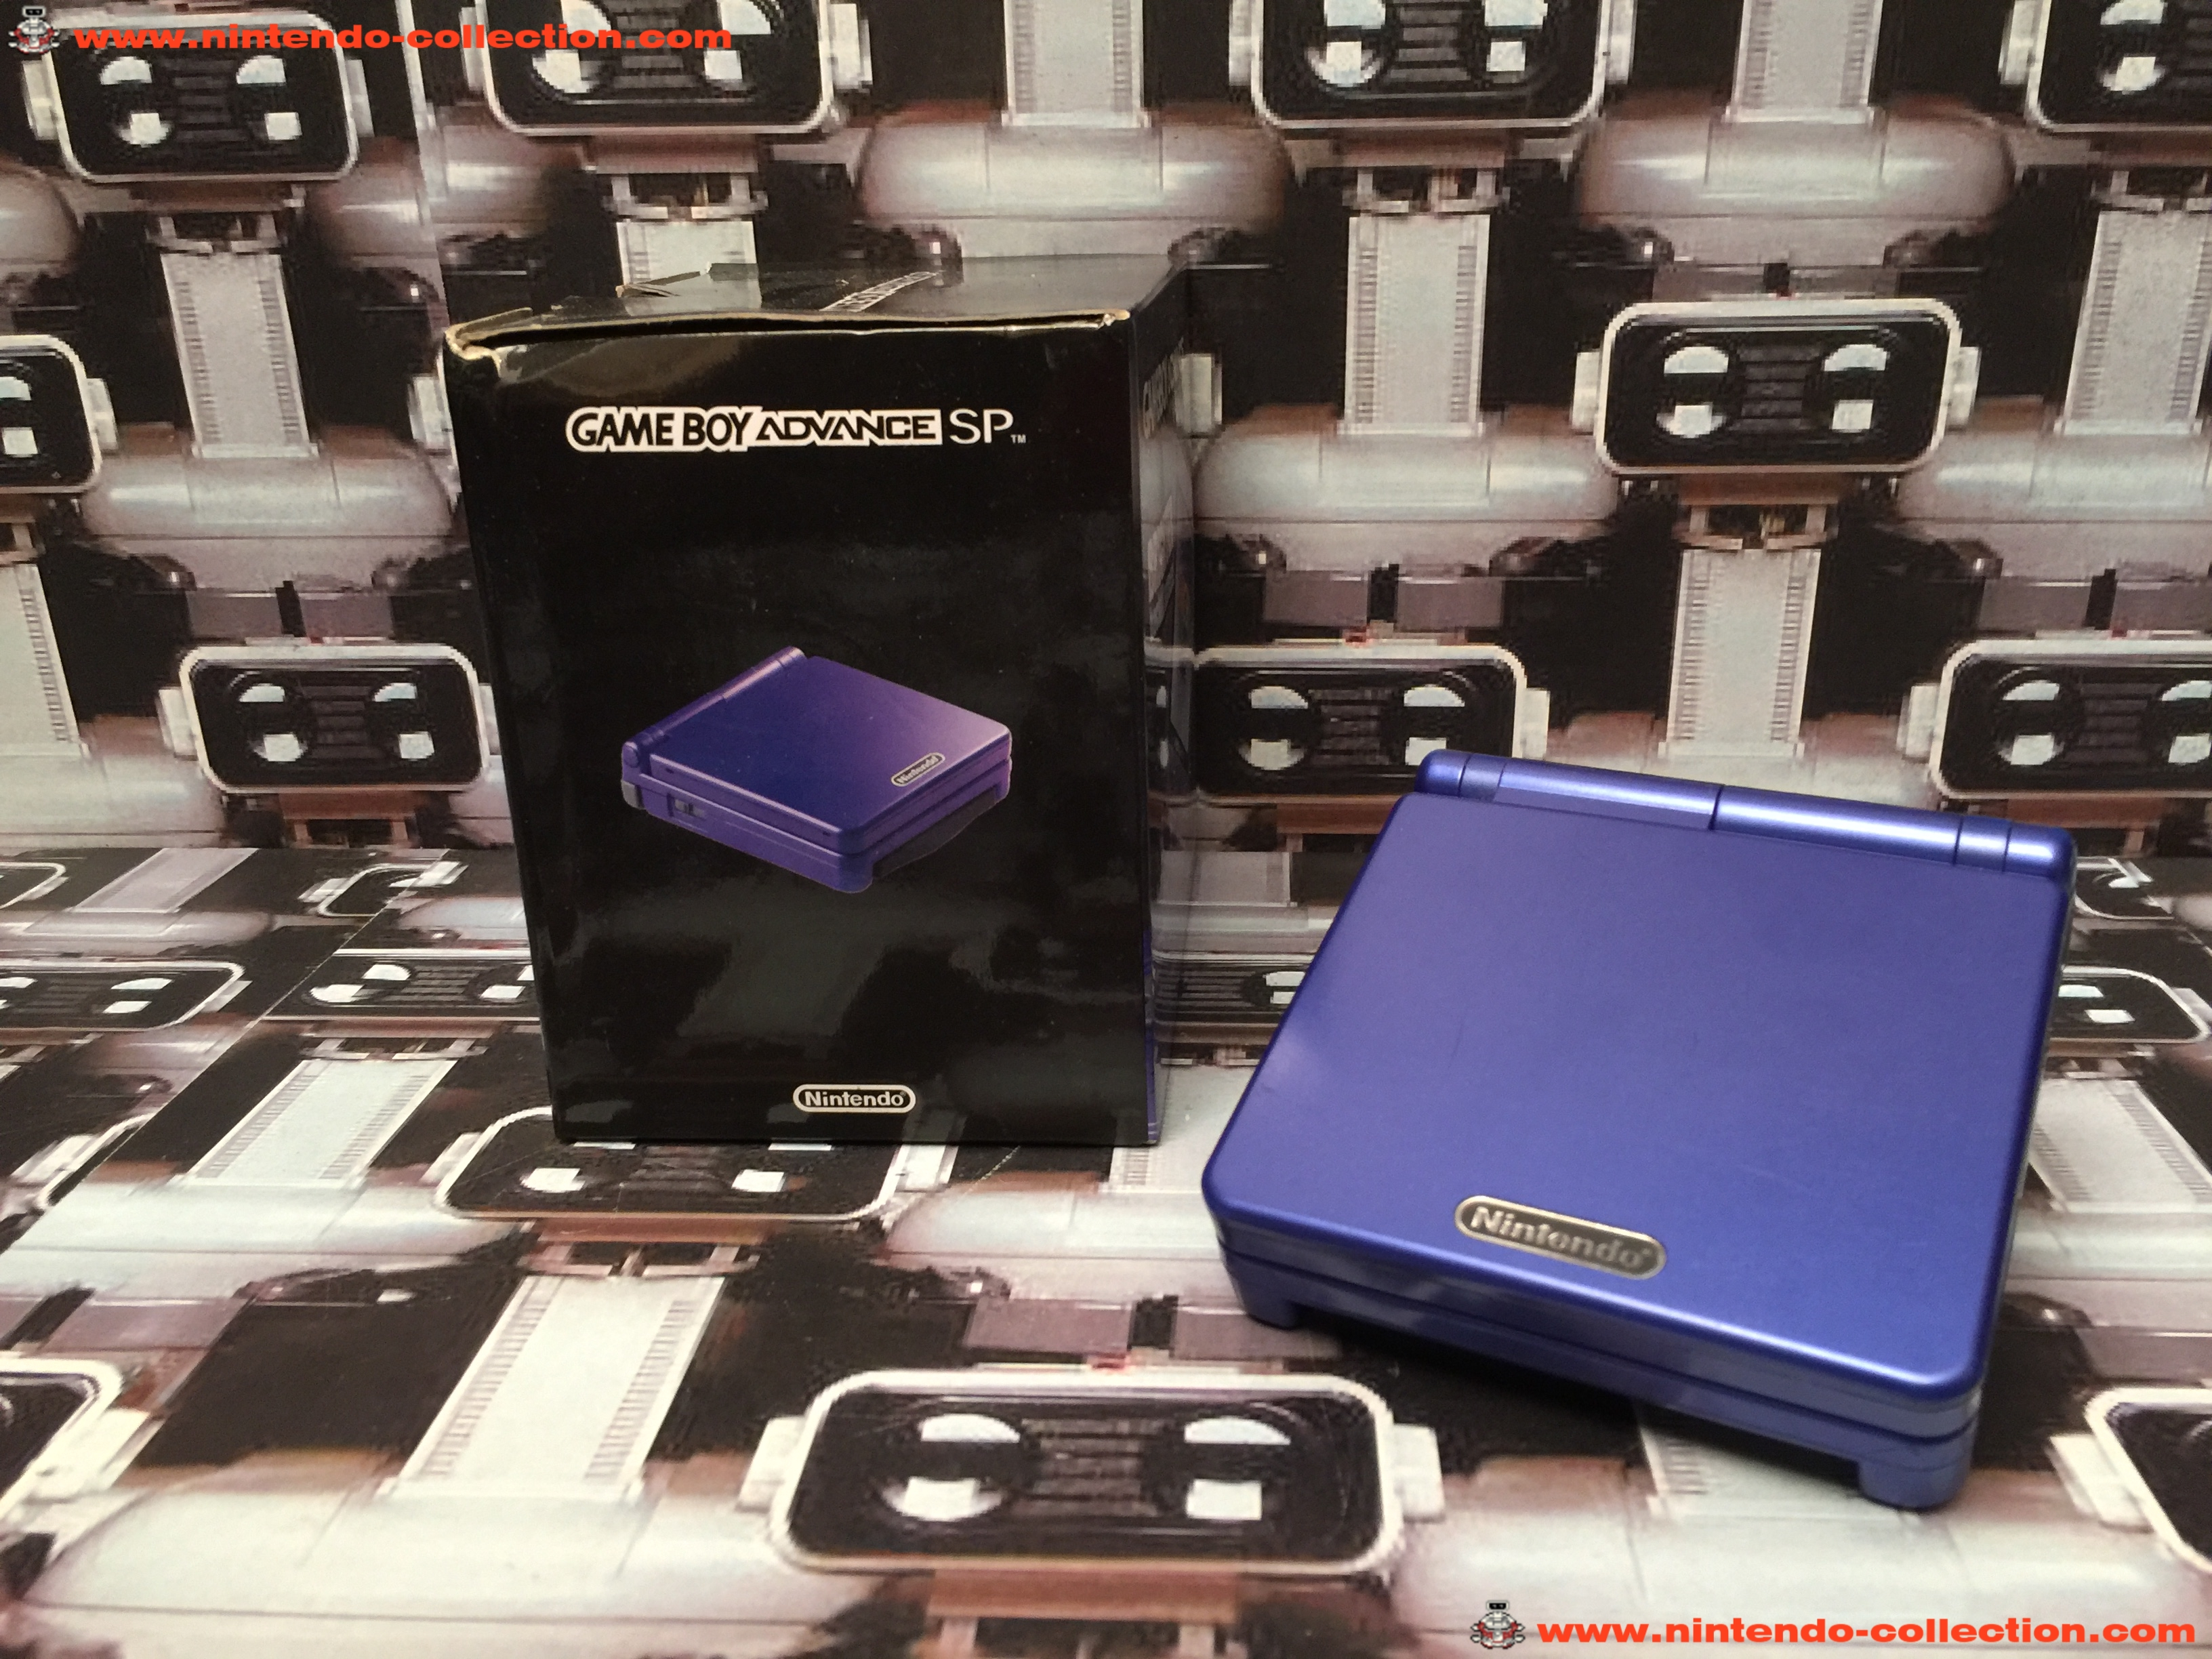 www.nintendo-collection.com - Gameboy Advance GBA SP Blue Bleu edition Singapour Singapore - 02